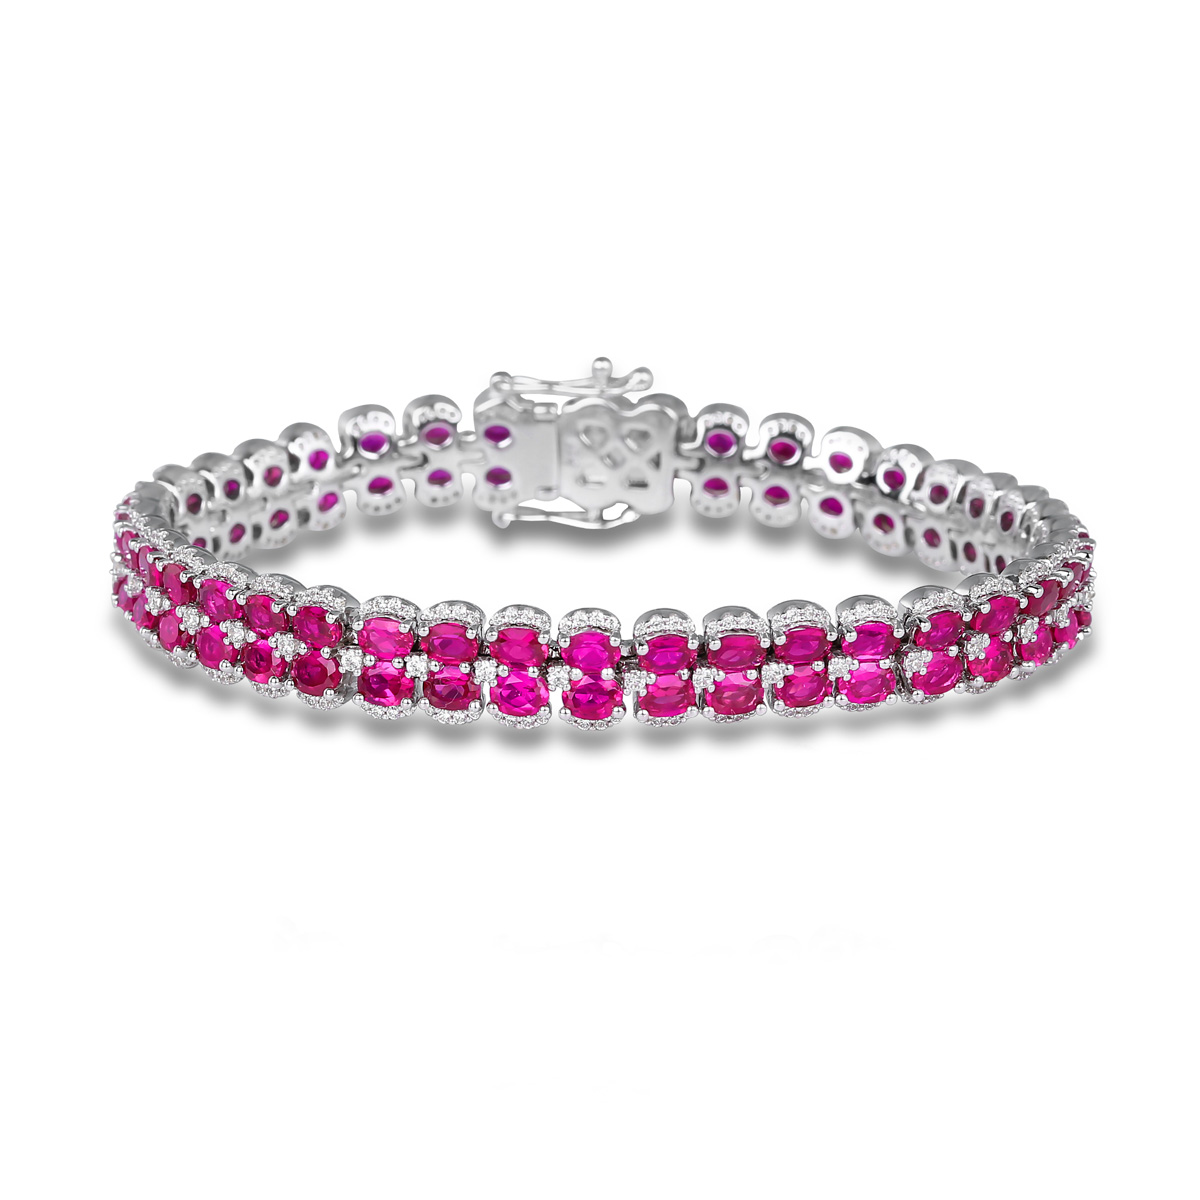 Double Oval Ruby and Diamond Bracelet - This double oval ruby and diamond bracelet comes in a variety of material types like 14k white gold, yellow gold, rose gold and can be customized with your jeweler. Fana gemstone bracelets are perfect for that special woman in your life.